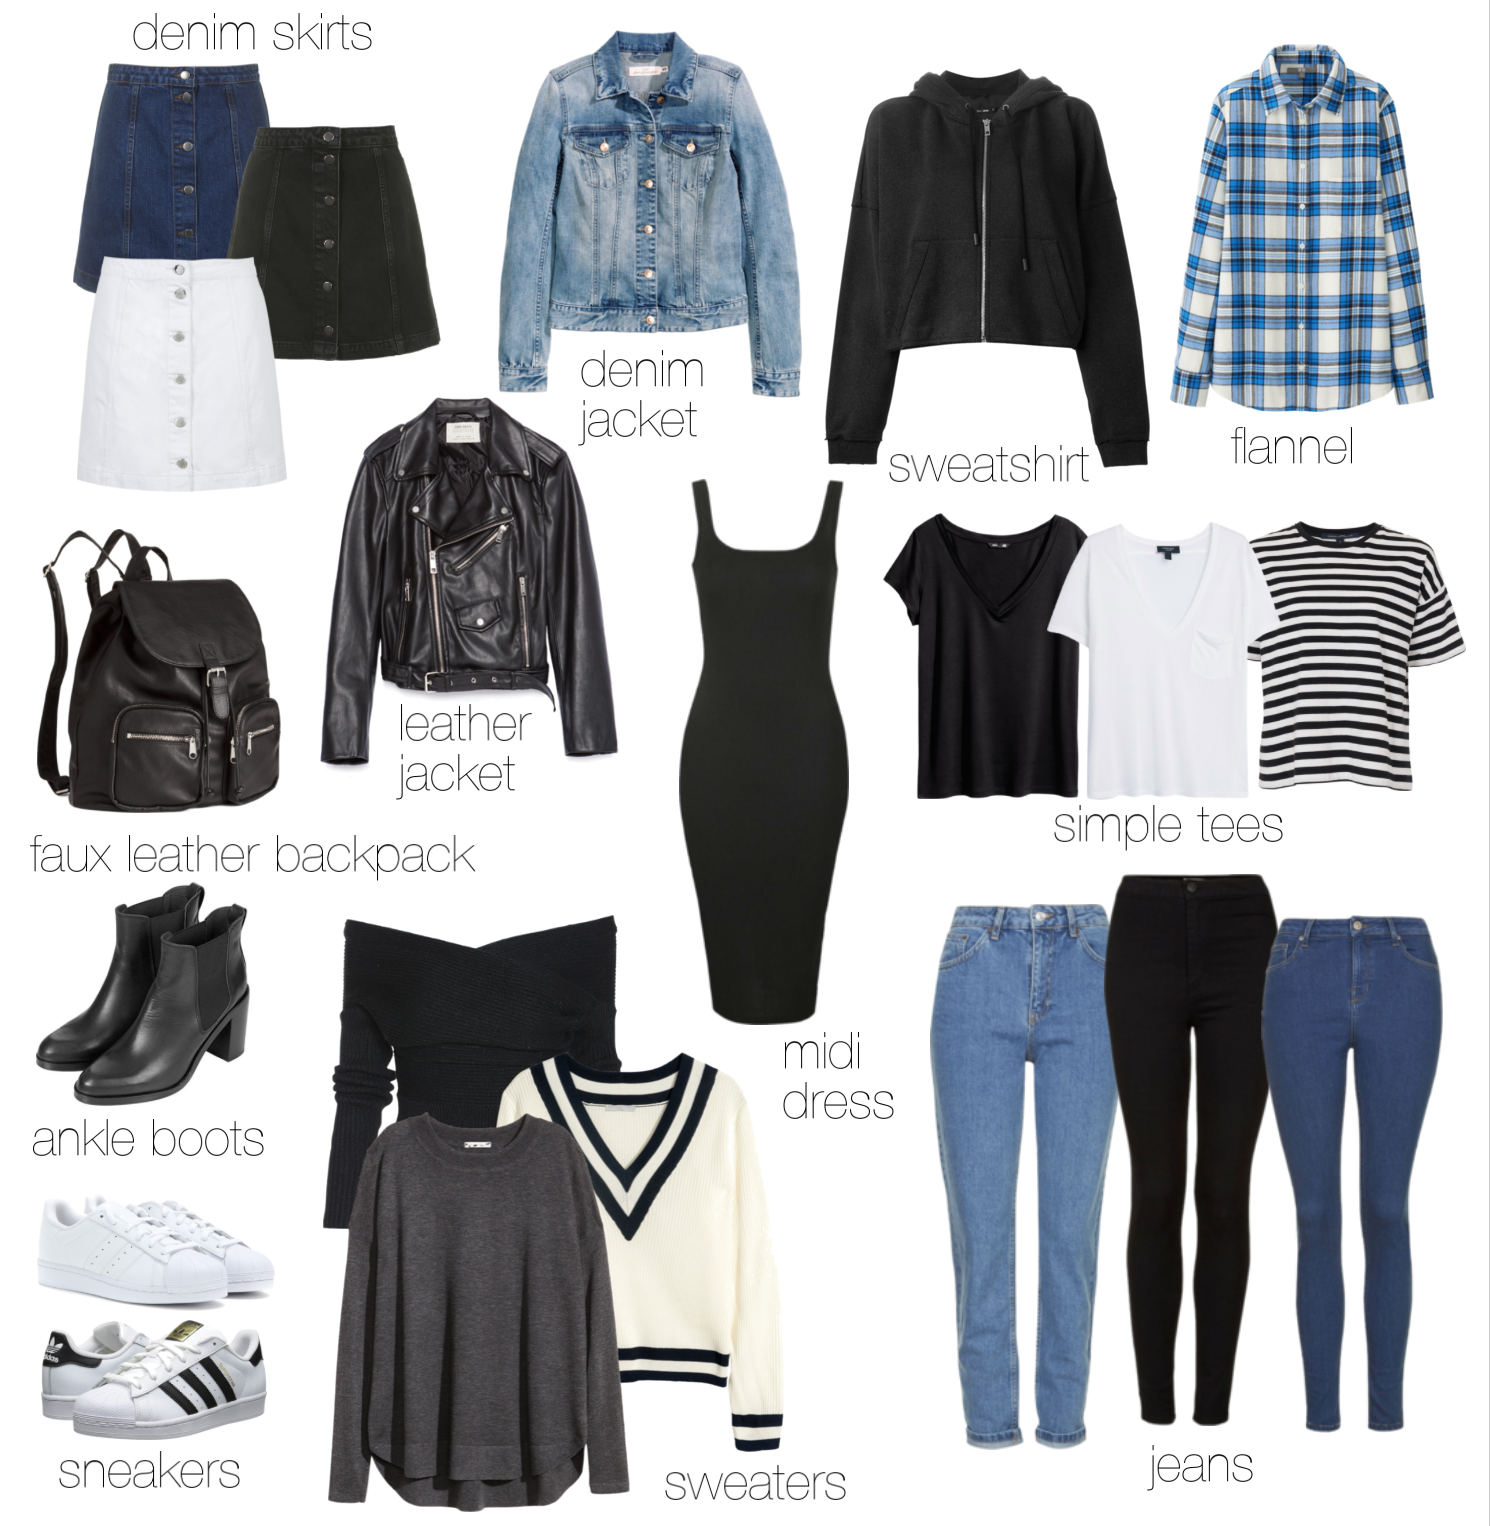 Cute Outfits With Black Jeans For School